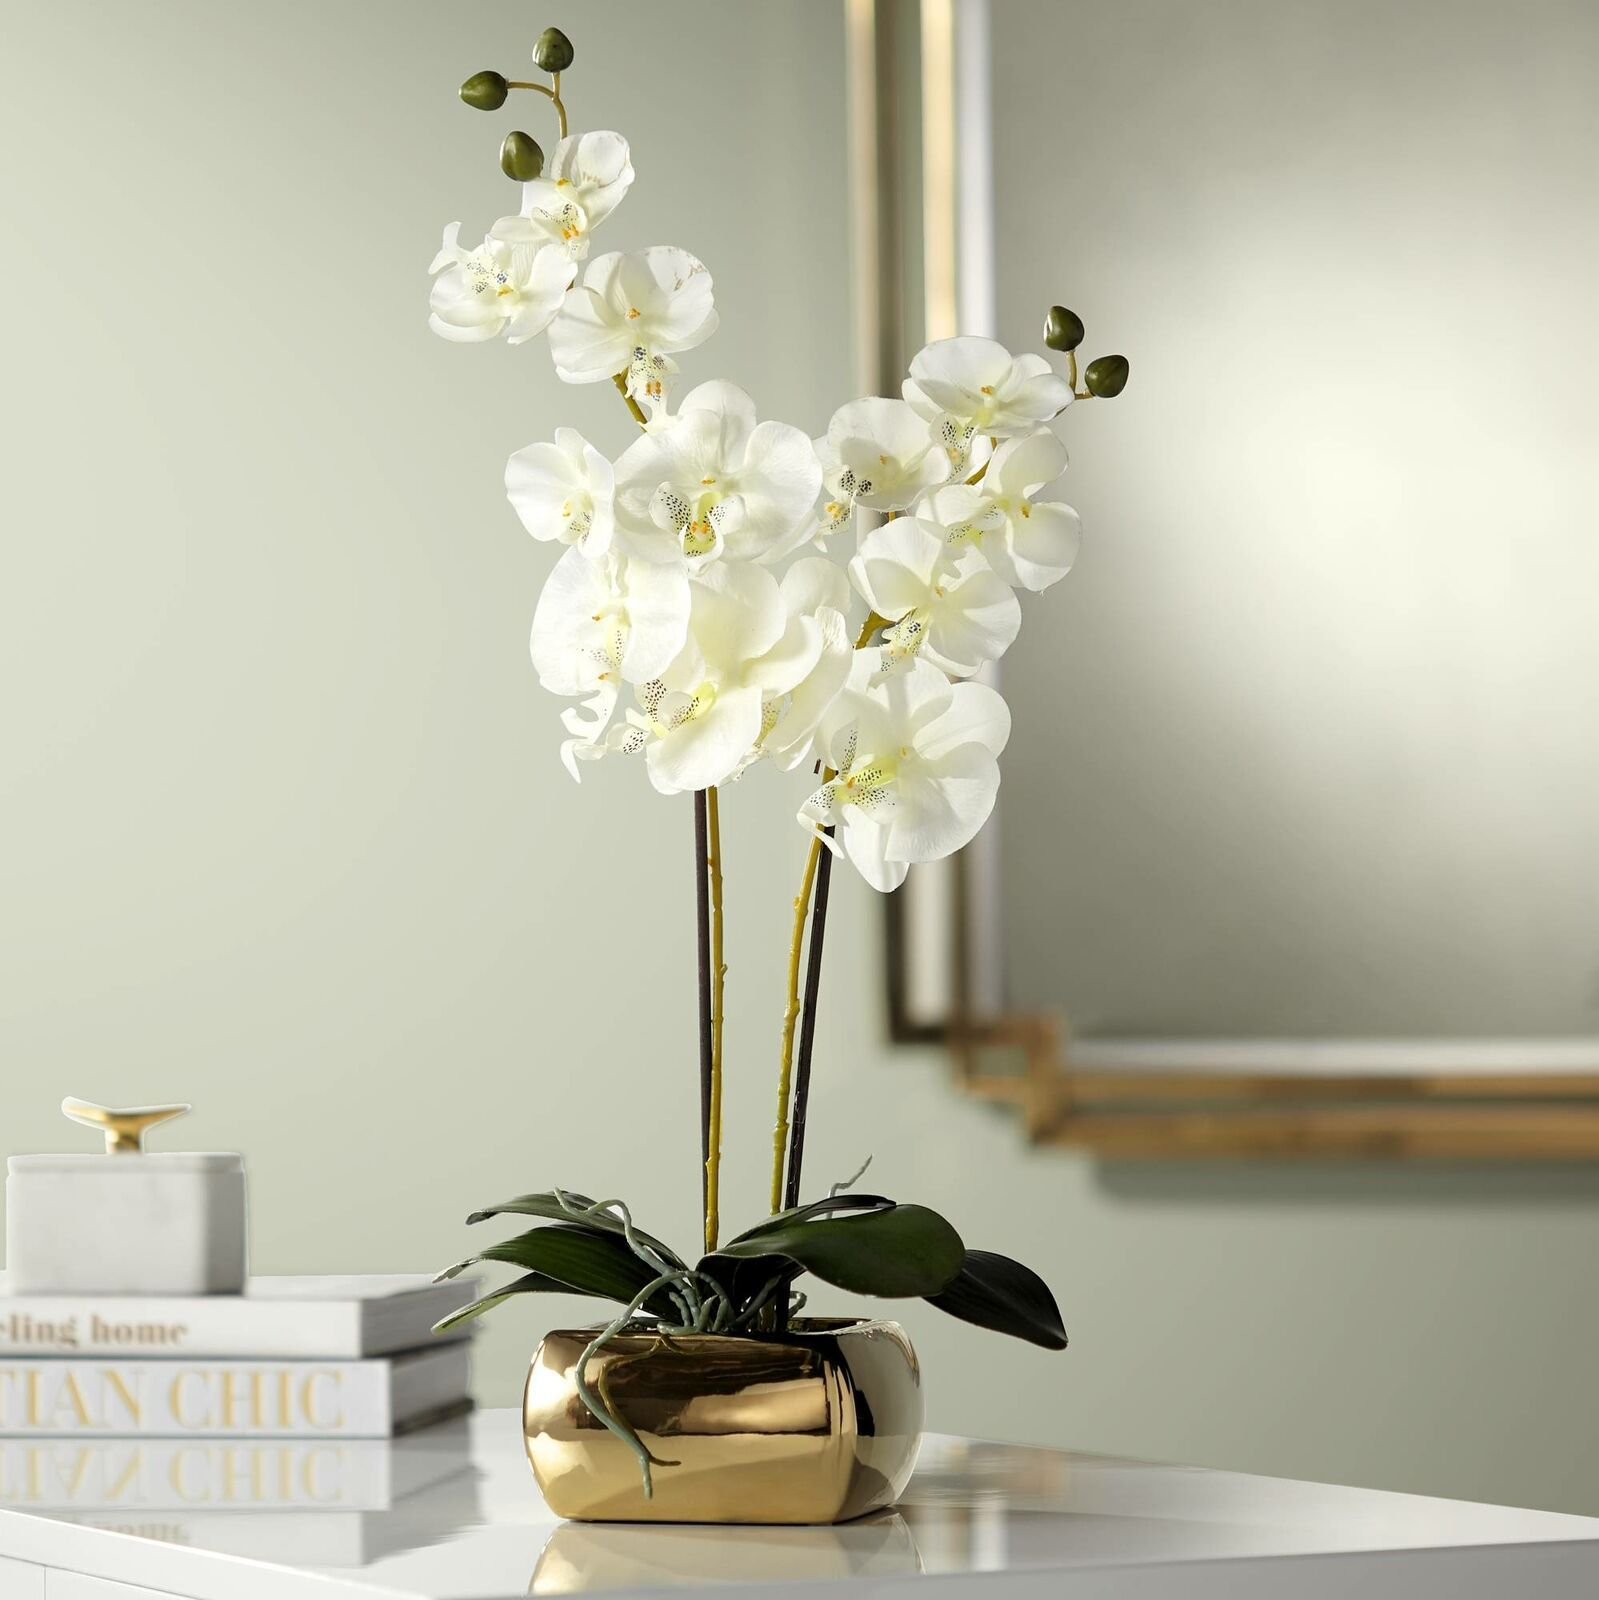 White Orchid 22 High Faux Flowers In Gold Ceramic Pot White Flower Ideas Of White Flower Whiteflower Flower Bathroom Flowers Faux Flowers White Orchids